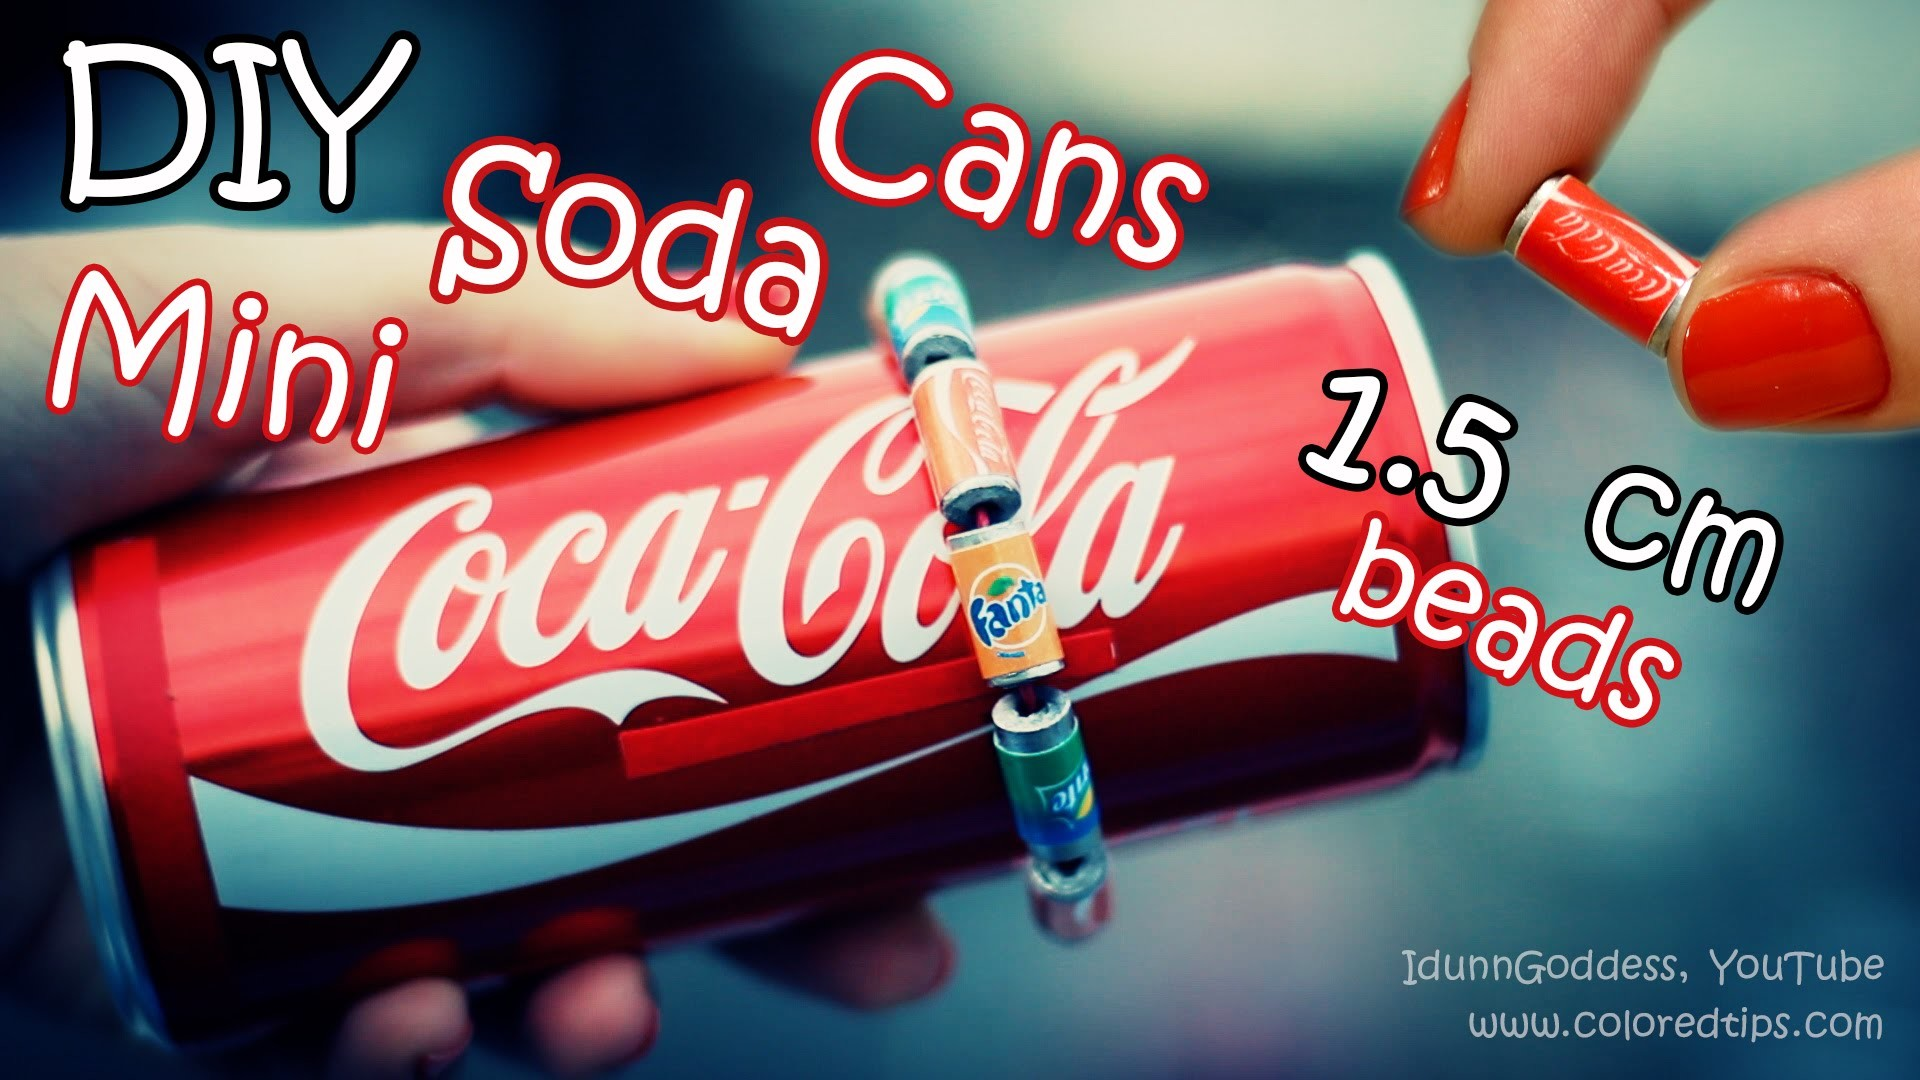 DIY Mini Soda Cans Beads - How To Make Tiny Cola, Fanta and Sprite Cans